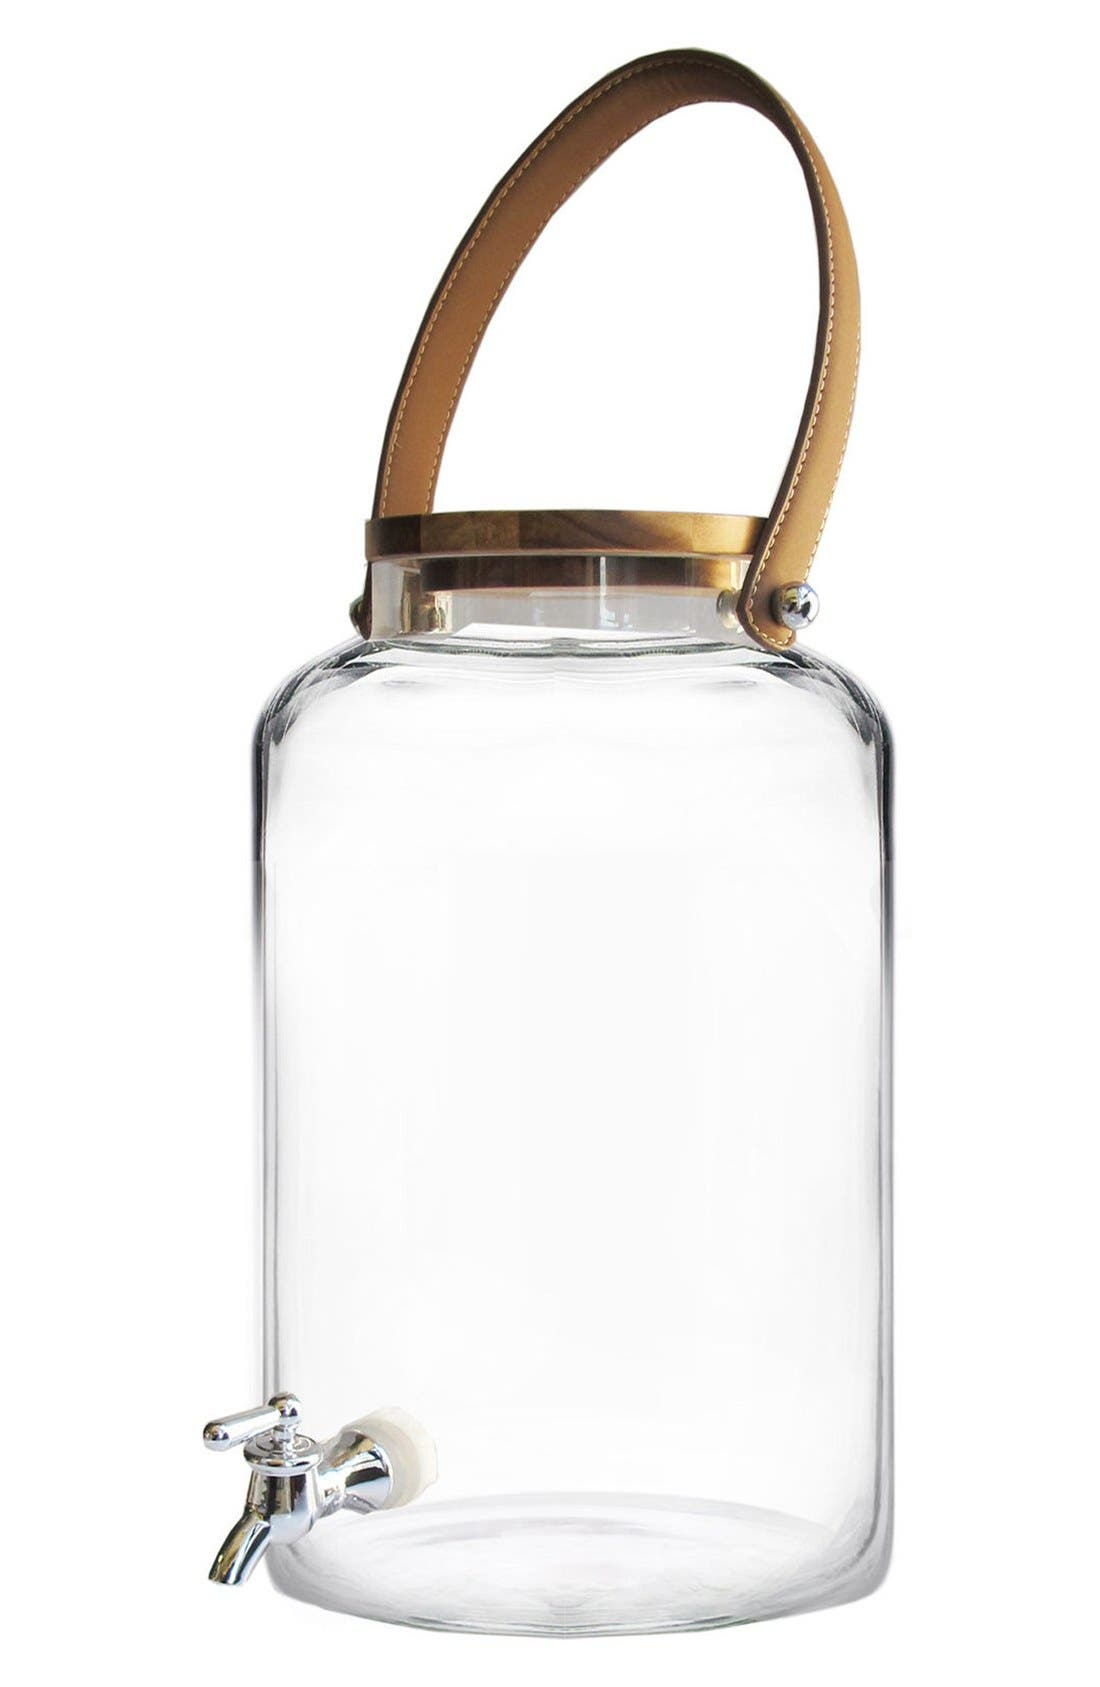 Main Image - American Atelier Kent 2-Gallon Beverage Dispenser